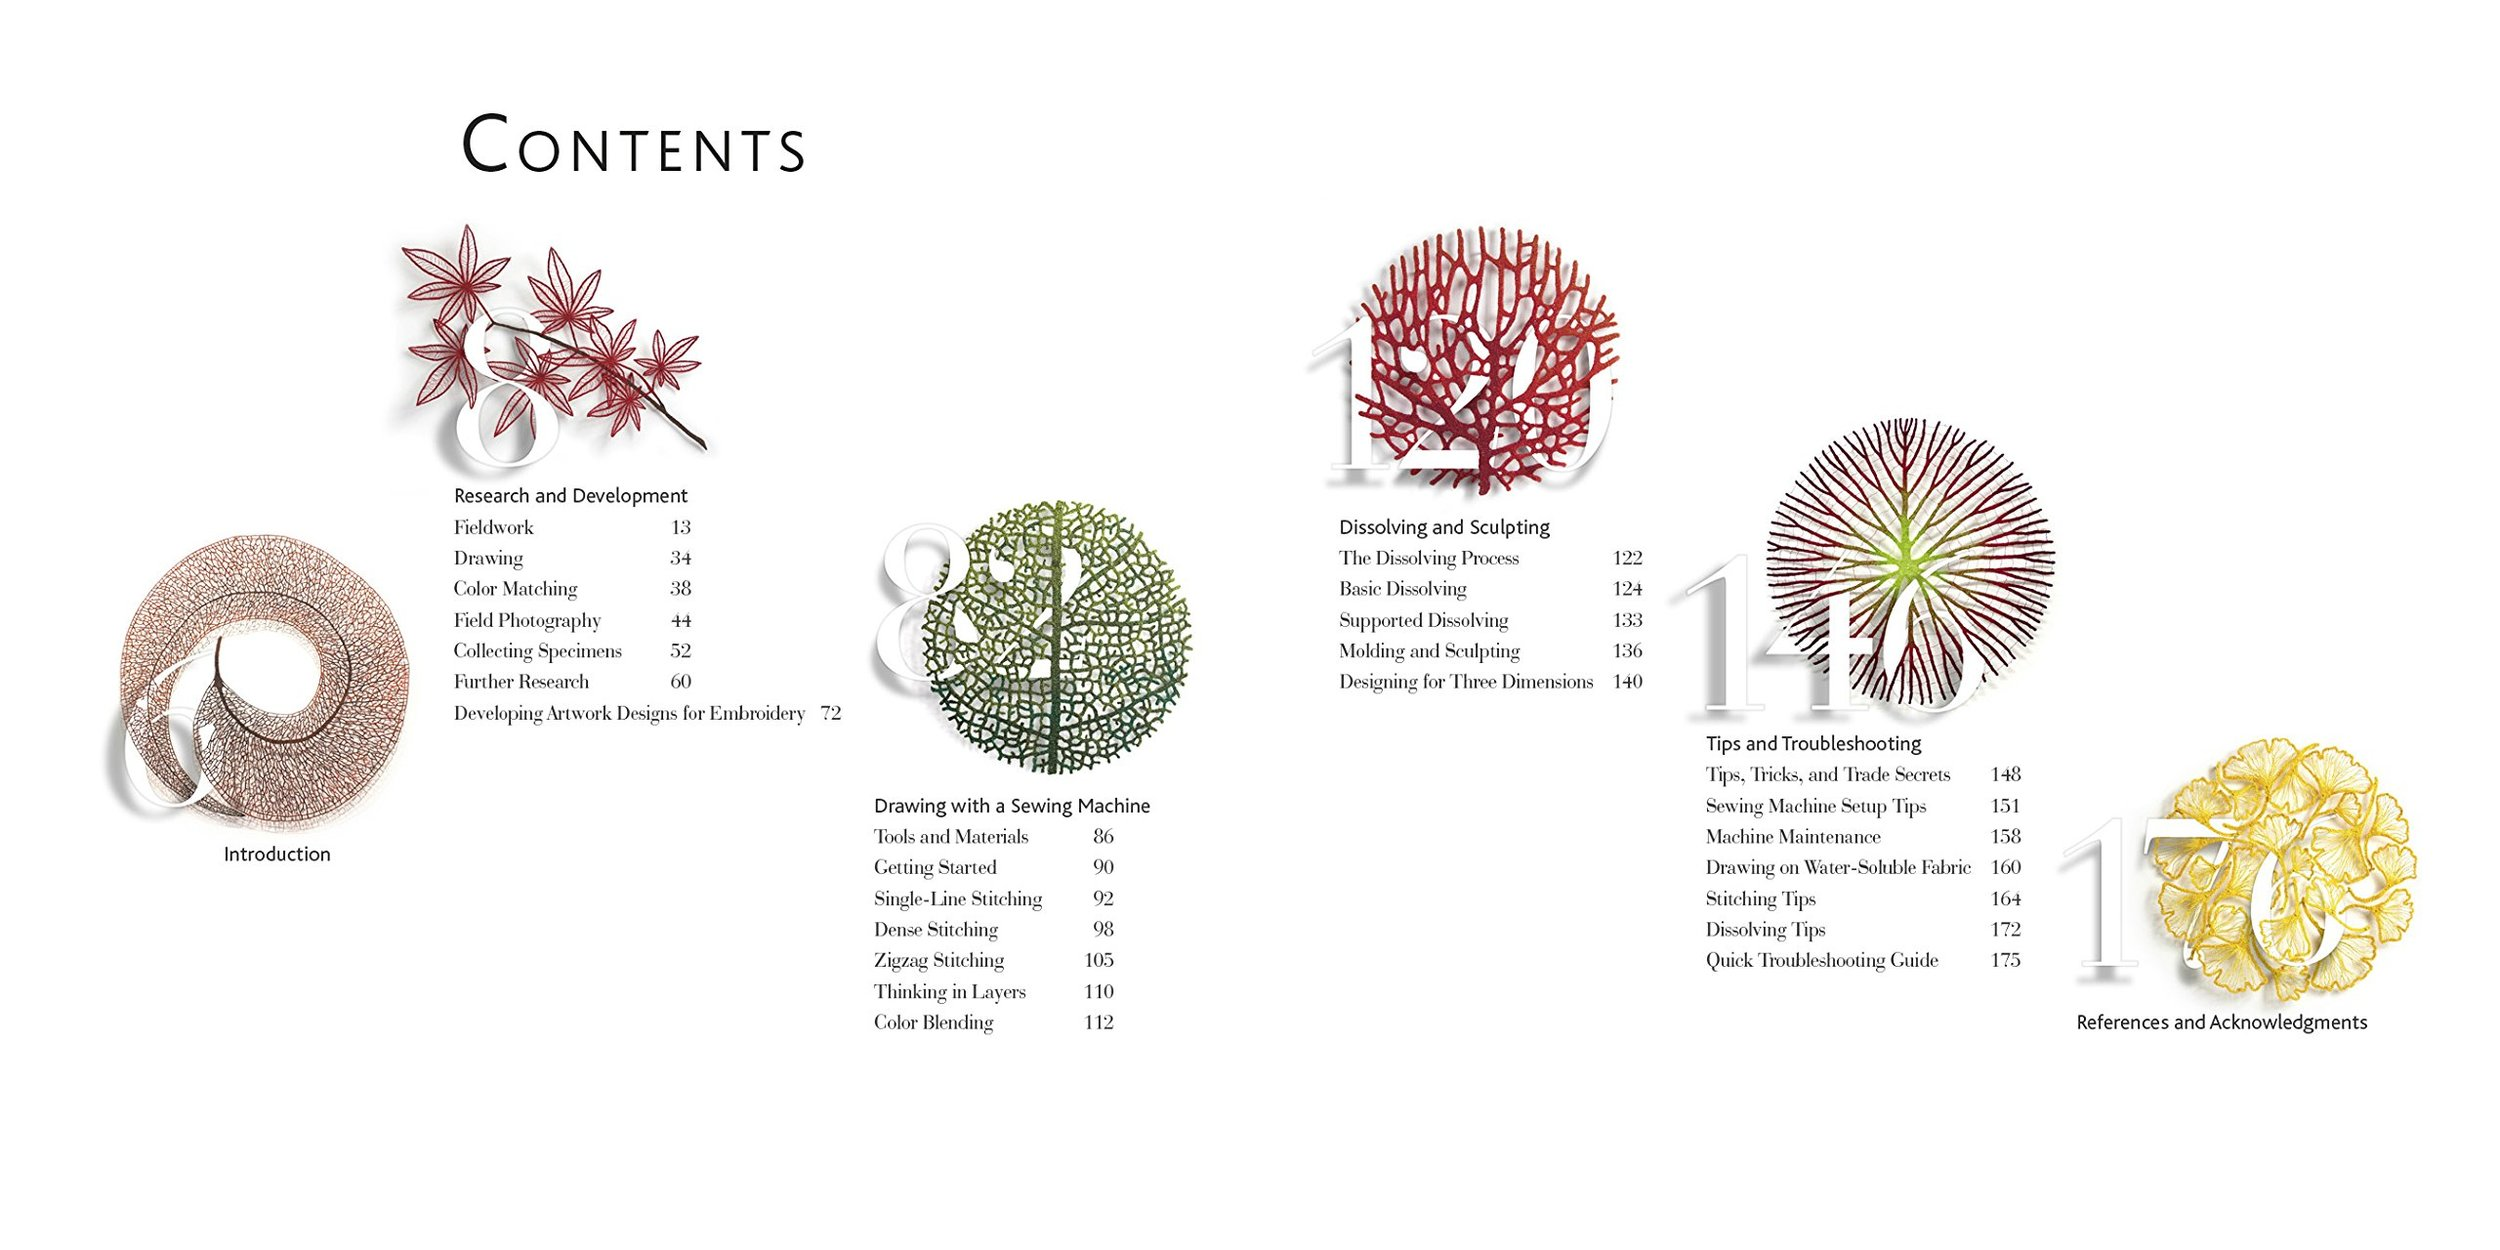 organic embroidery meredith Woolnough contents page.jpg